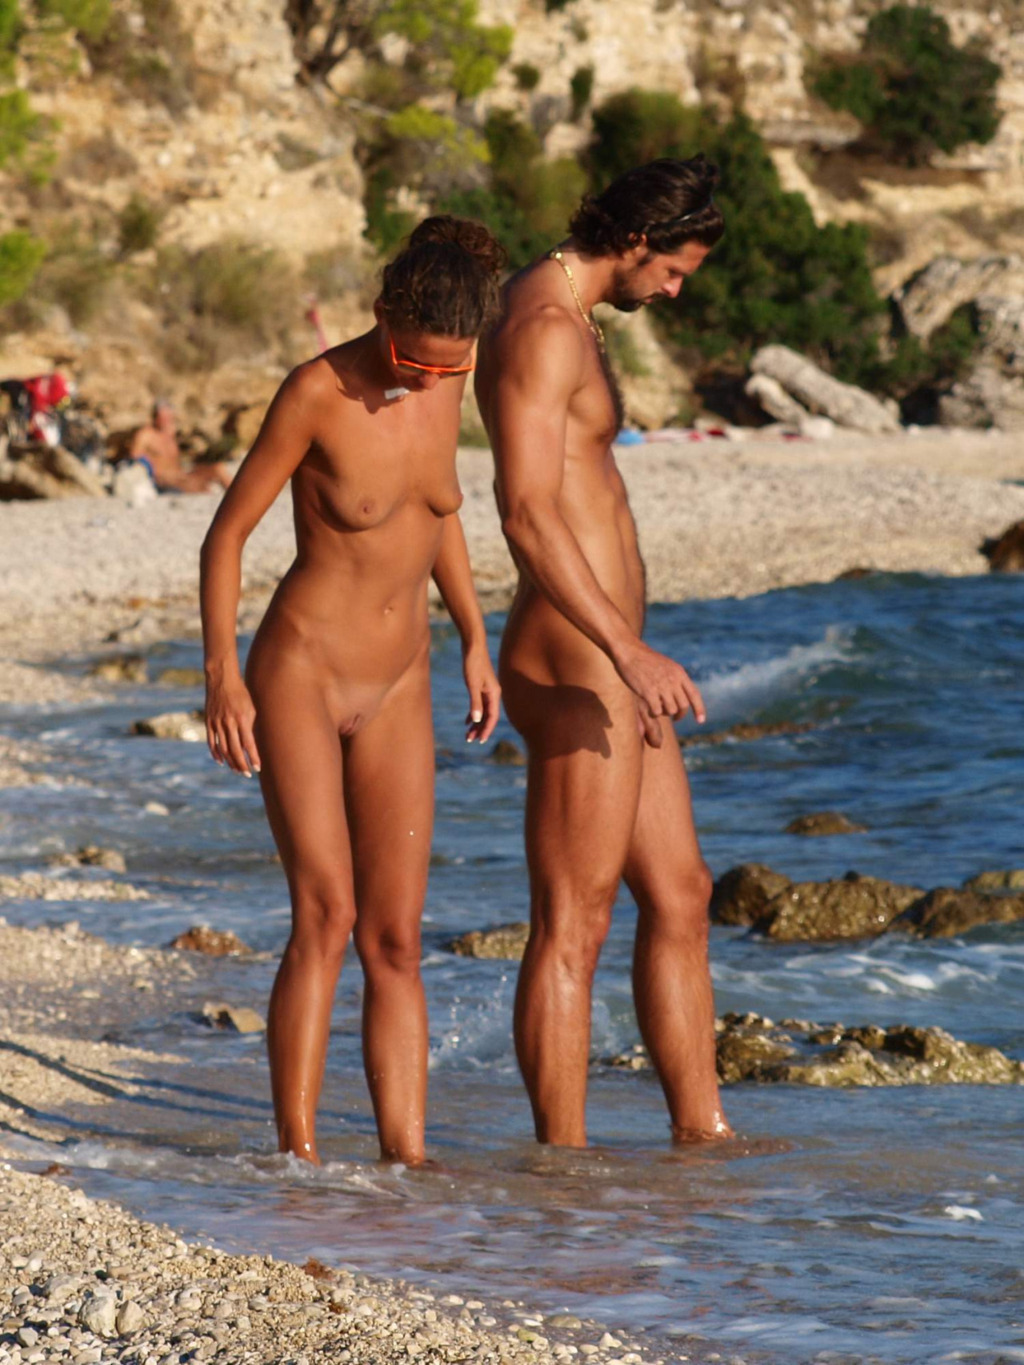 sexy nudist straight man beach